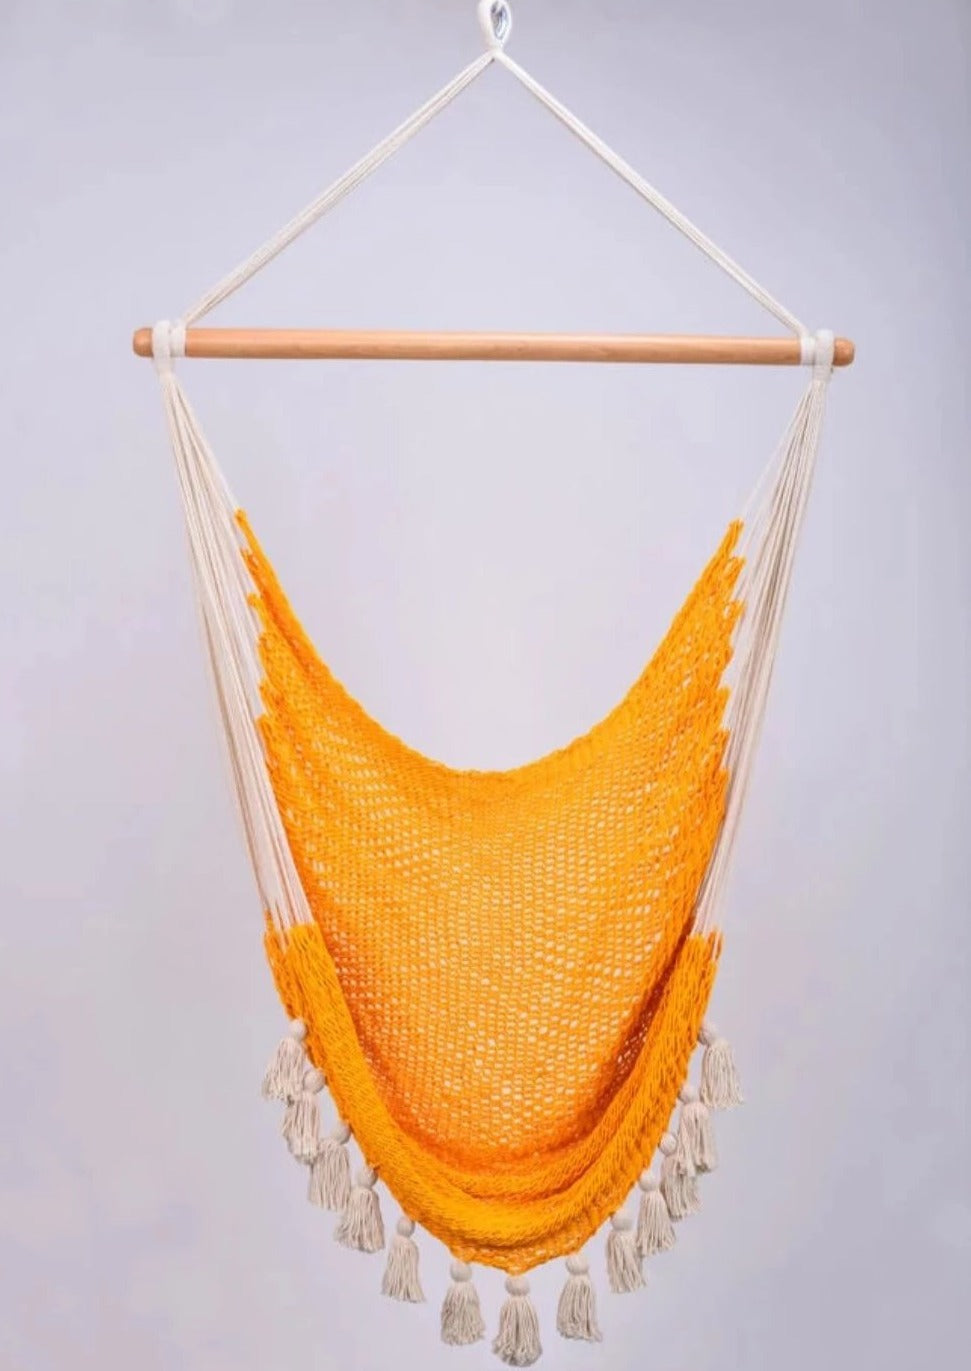 Deluxe Golden Inspired Cotton Hammock Swing with Natural Tassels